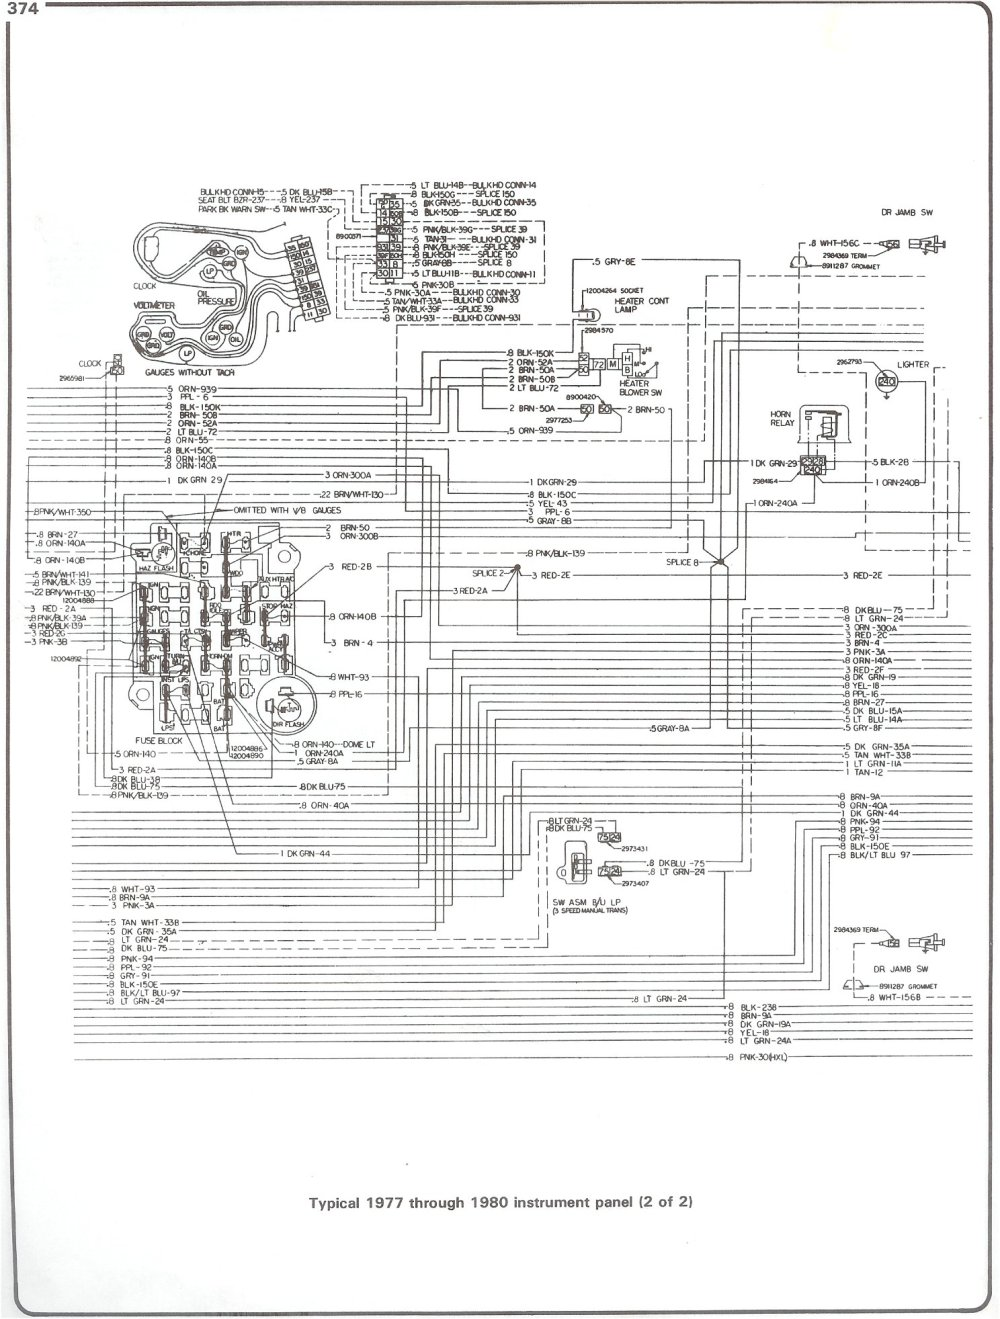 medium resolution of complete 73 87 wiring diagrams rh forum 73 87chevytrucks com 1986 chevy k10 wiring diagram 1986 chevy c10 wiring diagram for engine